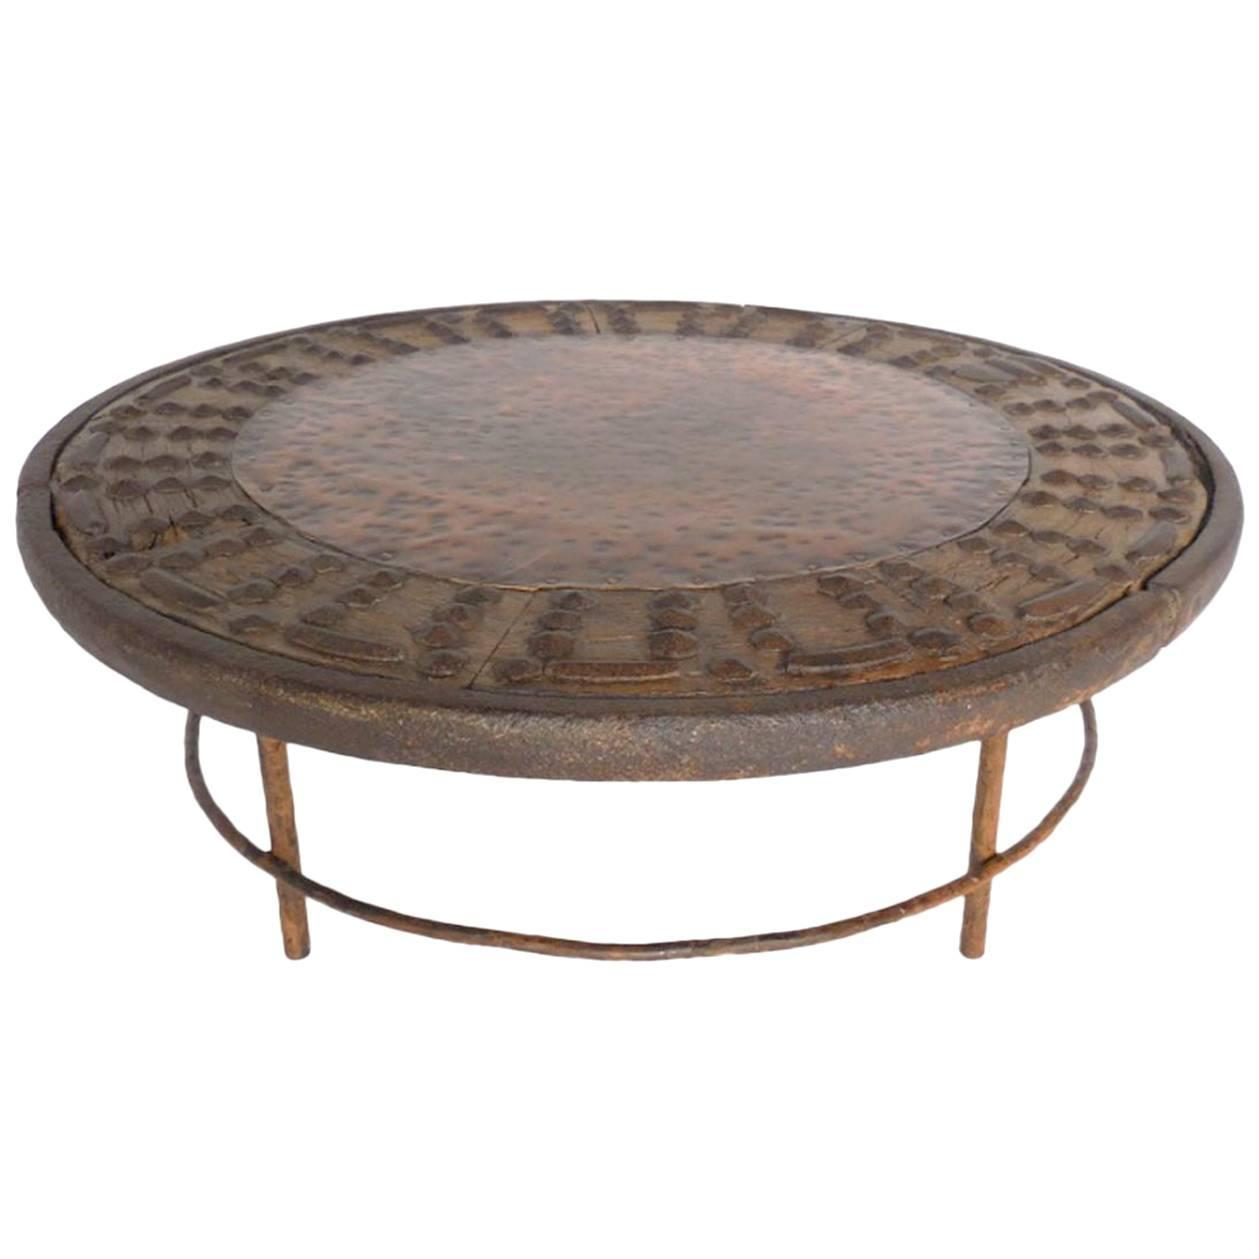 rustic round copper cocktail table for sale at 1stdibs. Black Bedroom Furniture Sets. Home Design Ideas